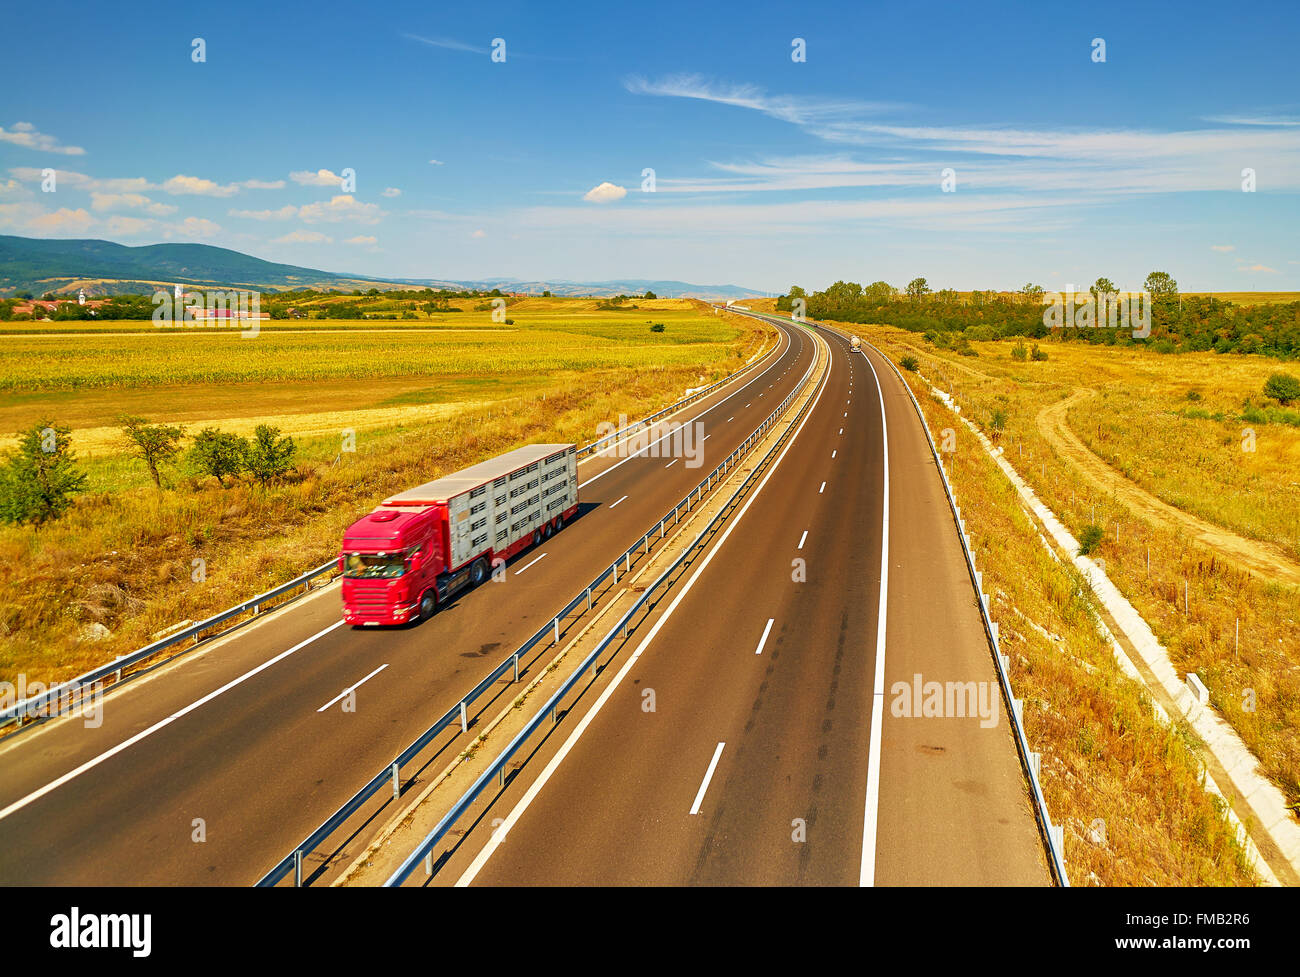 Freight Truck on Highway- Transportation Background - Stock Image